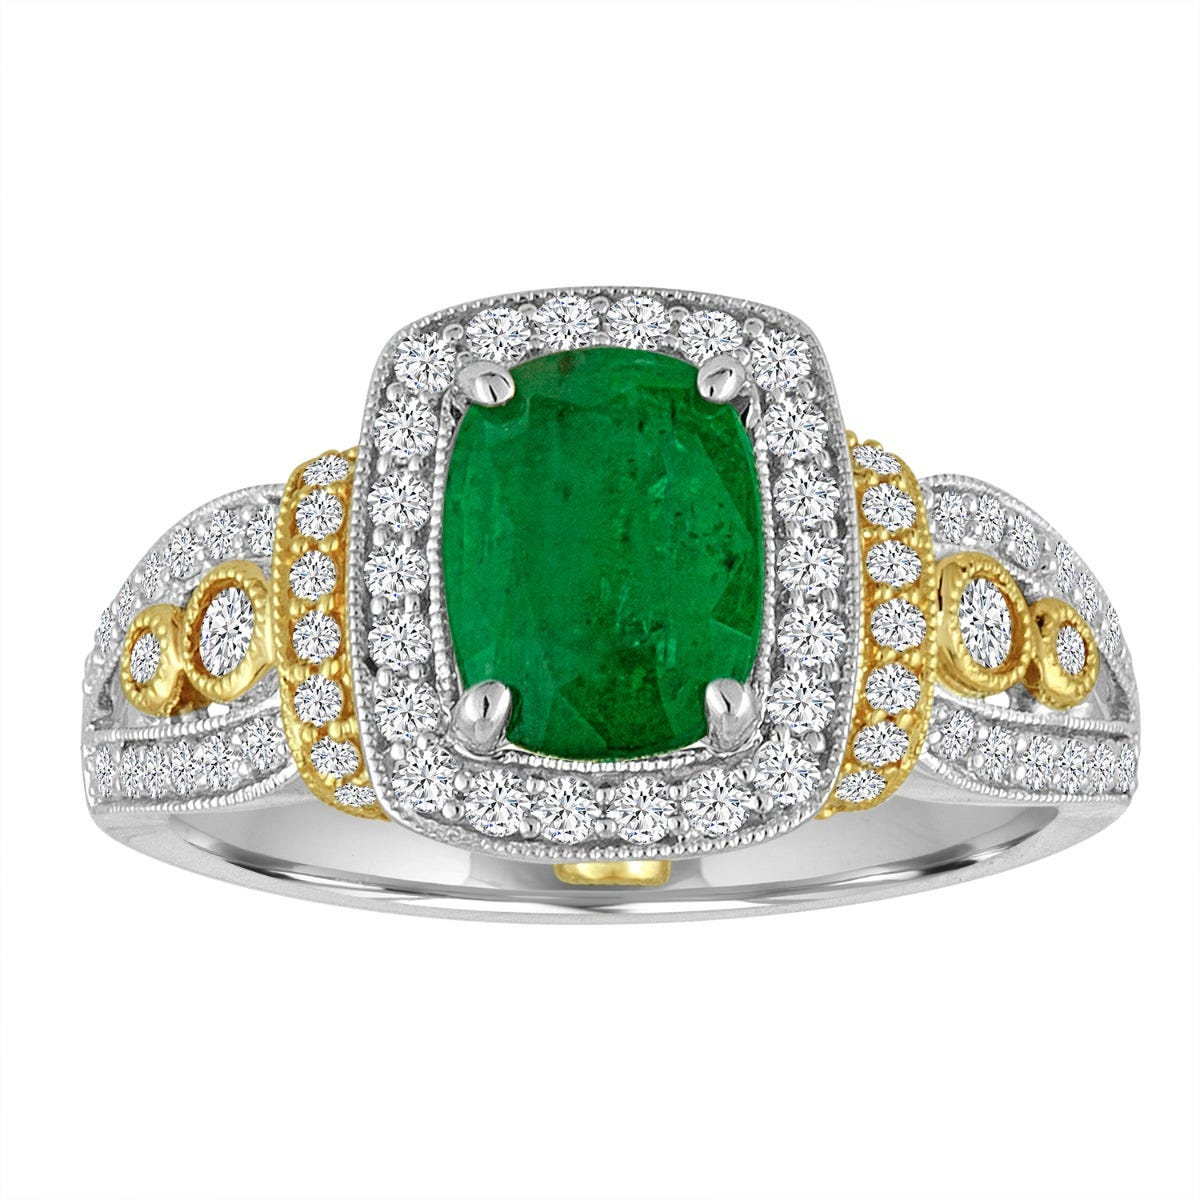 Emerald & Diamond Halo Vintage-Inspired Ring in 14k White & Yellow Gold